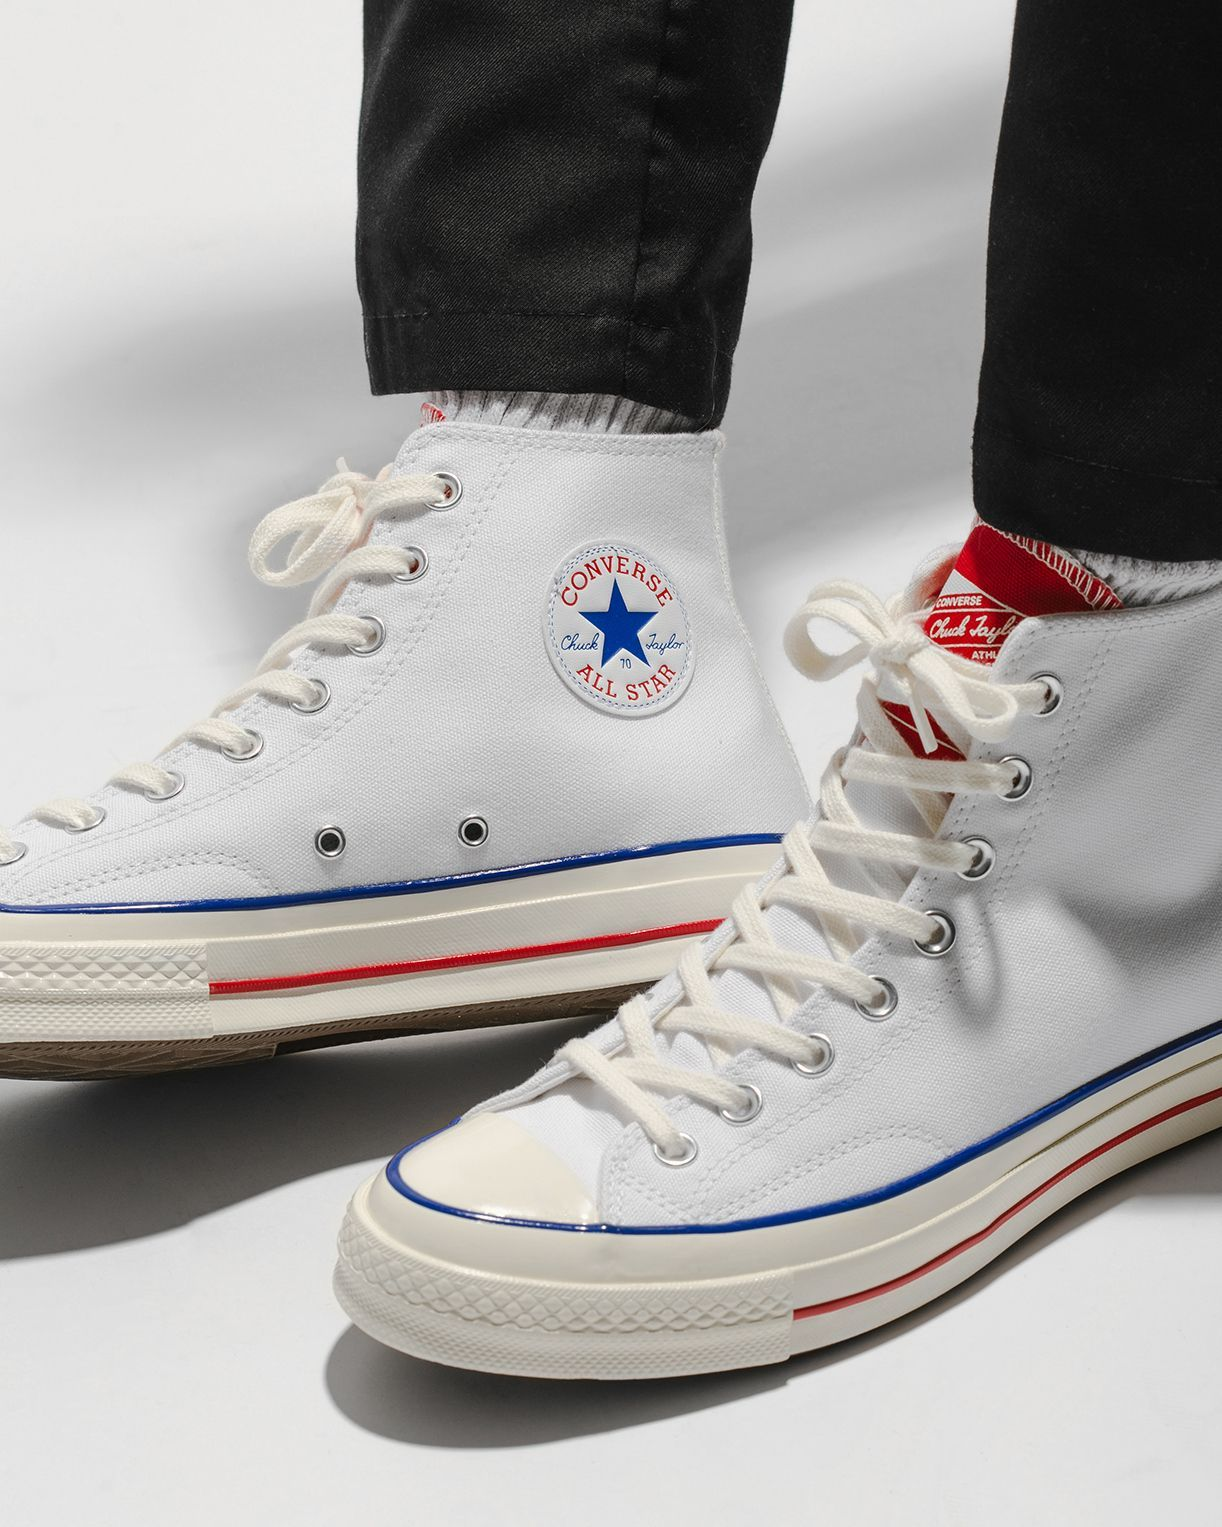 adidas converse style shoes